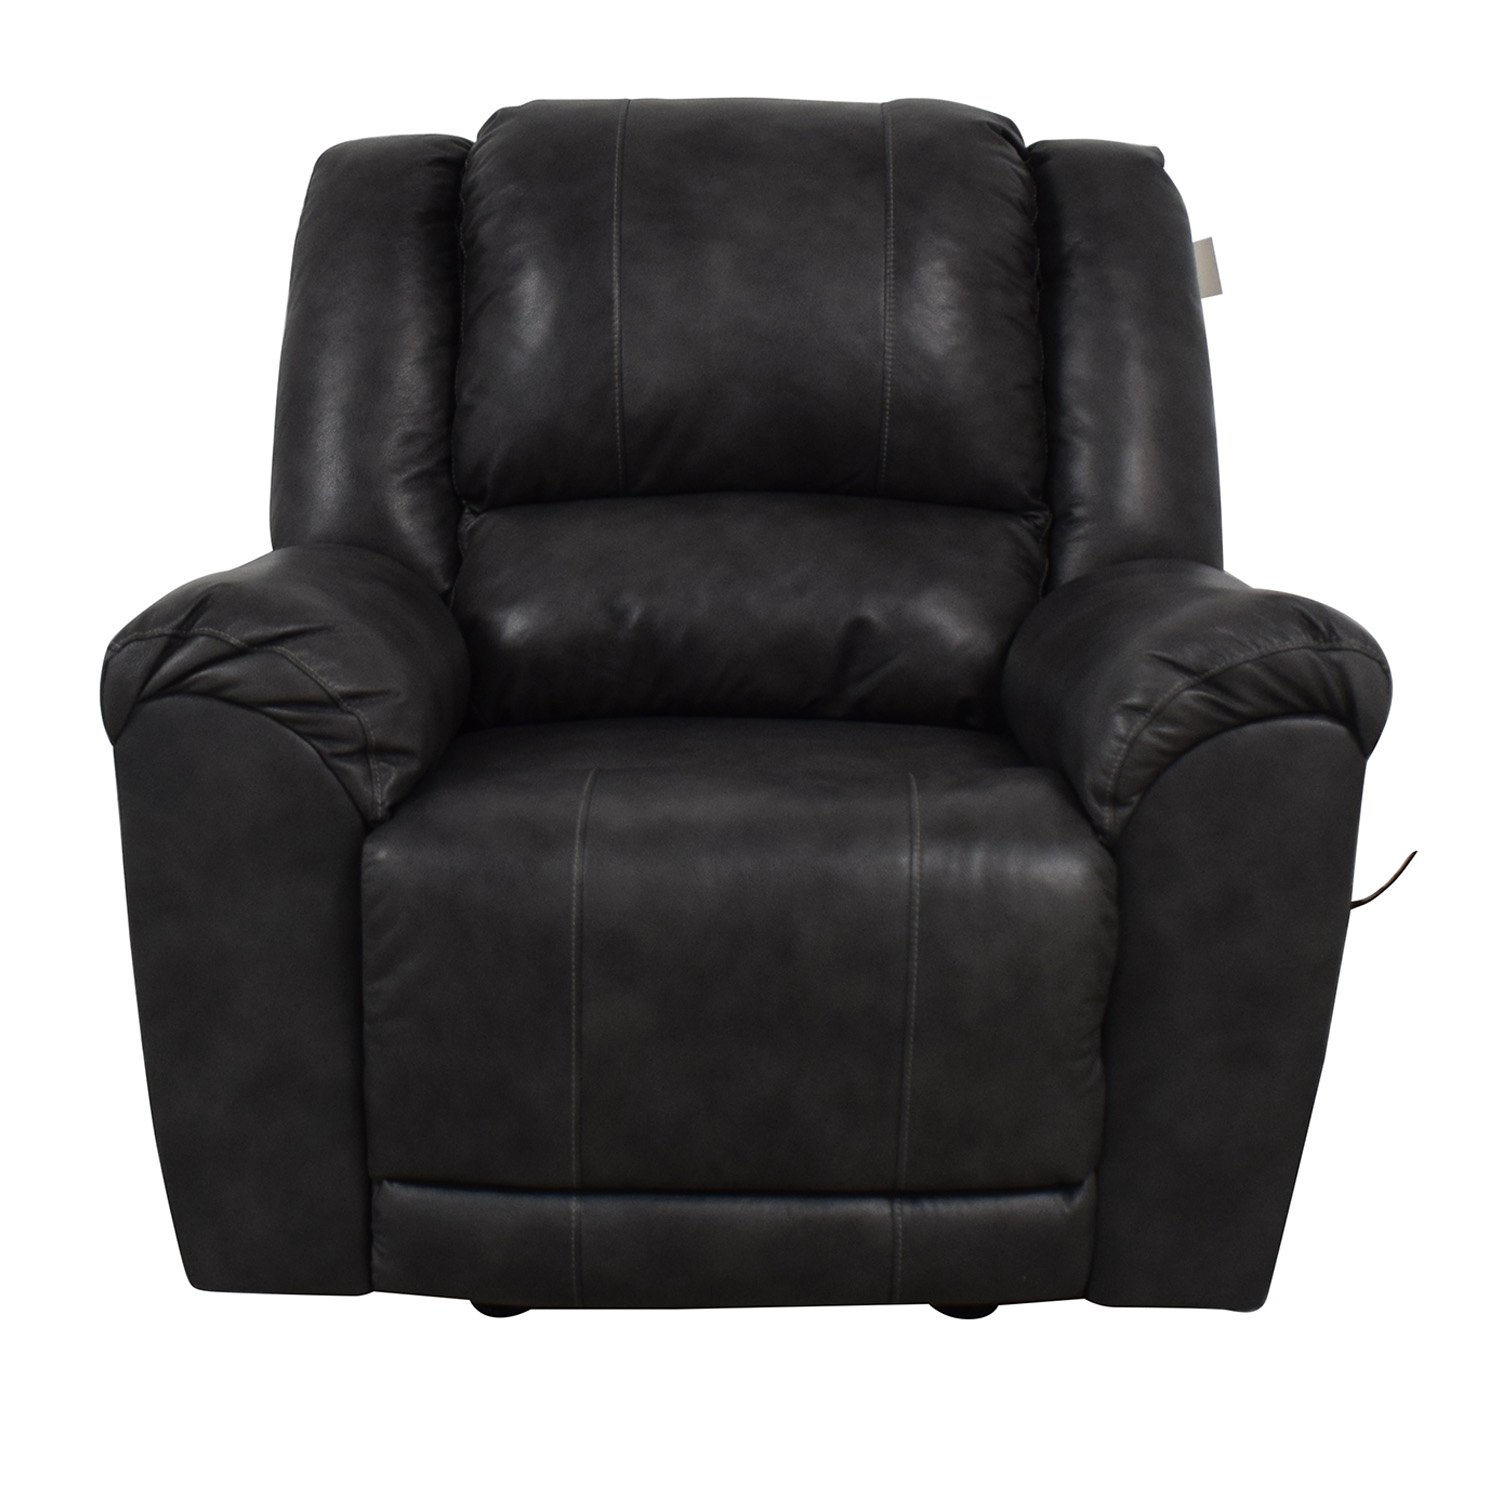 buy Ashley Furniture Persiphone Power Recliner Ashley Furniture Recliners